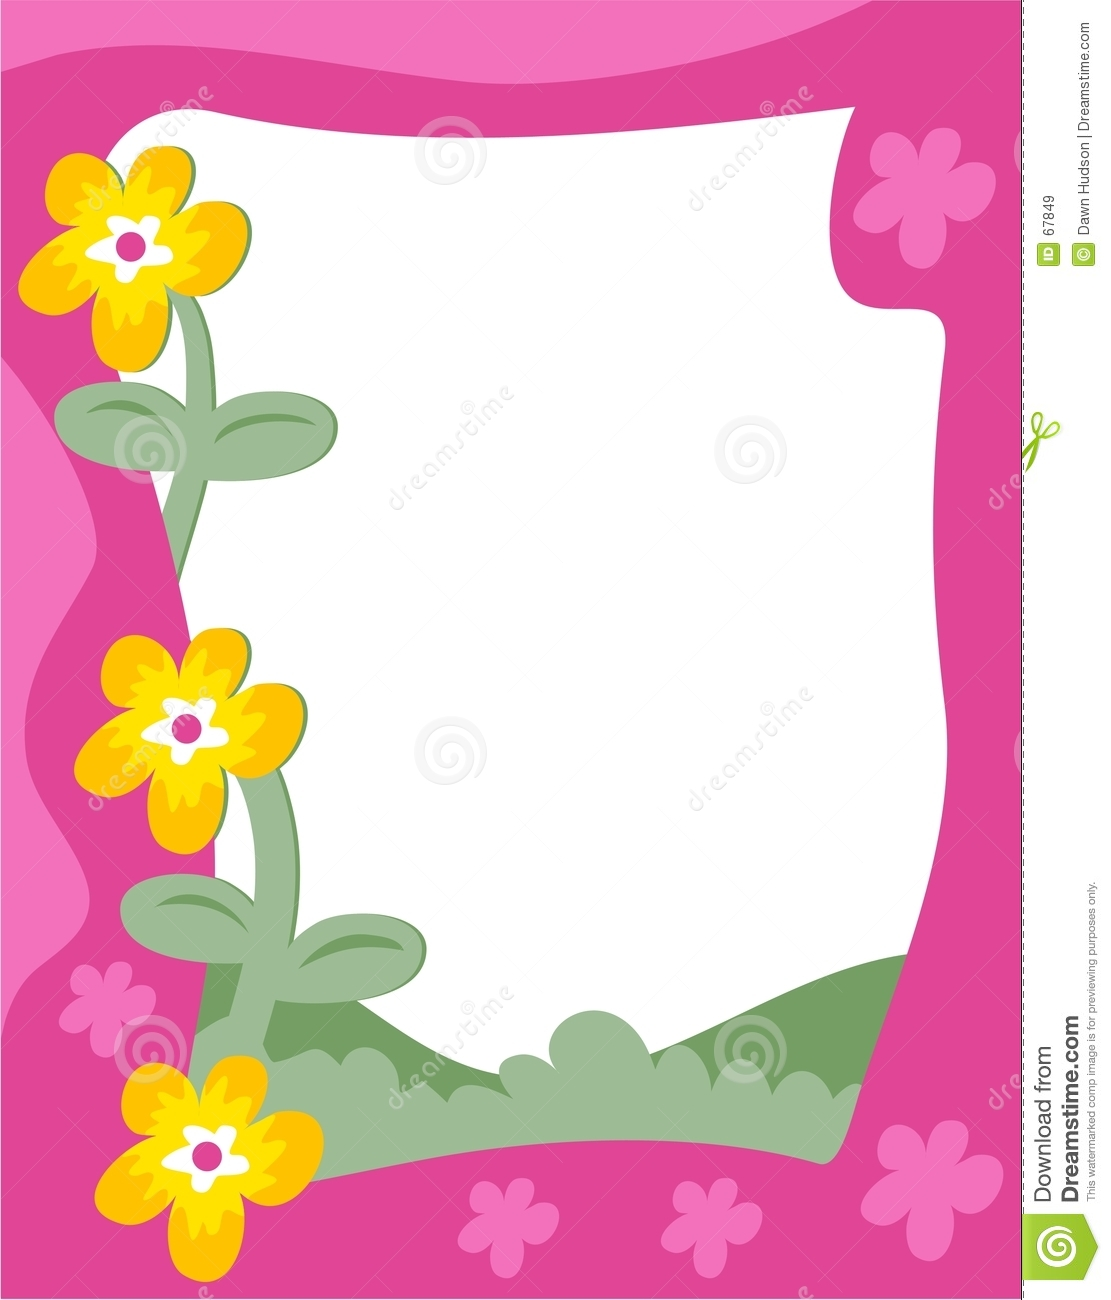 Garden Flowers Clip Art Design Home Design Ideas